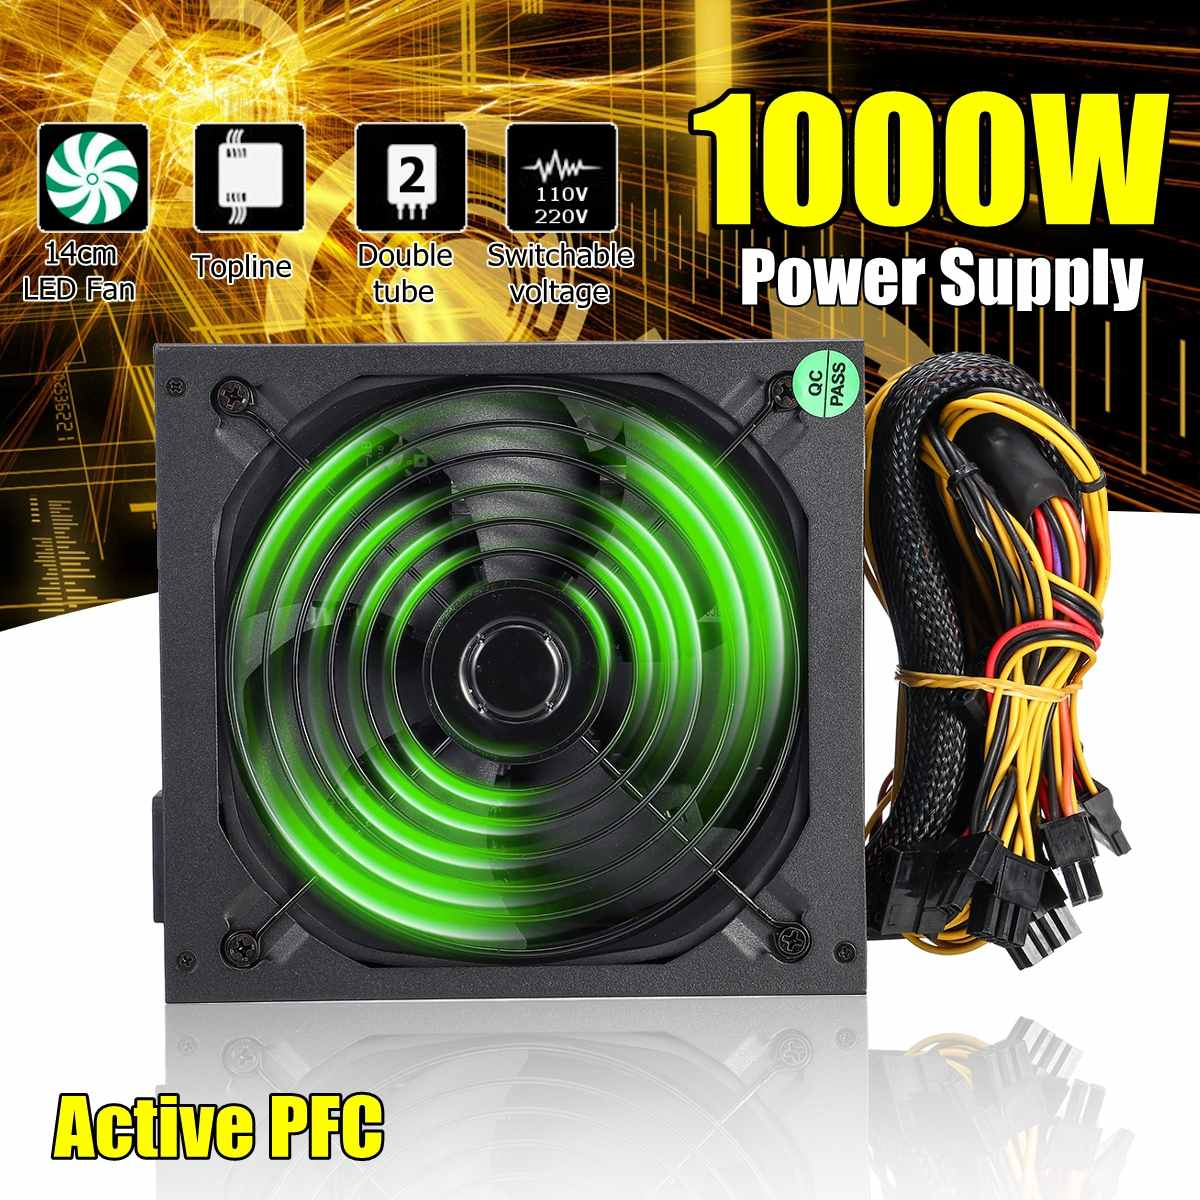 110 ~ 220 V 1000 W PC alimentation 140mm ventilateur LED 24 broches actif PFC PCI SATA ATX 12 V ordinateur alimentation